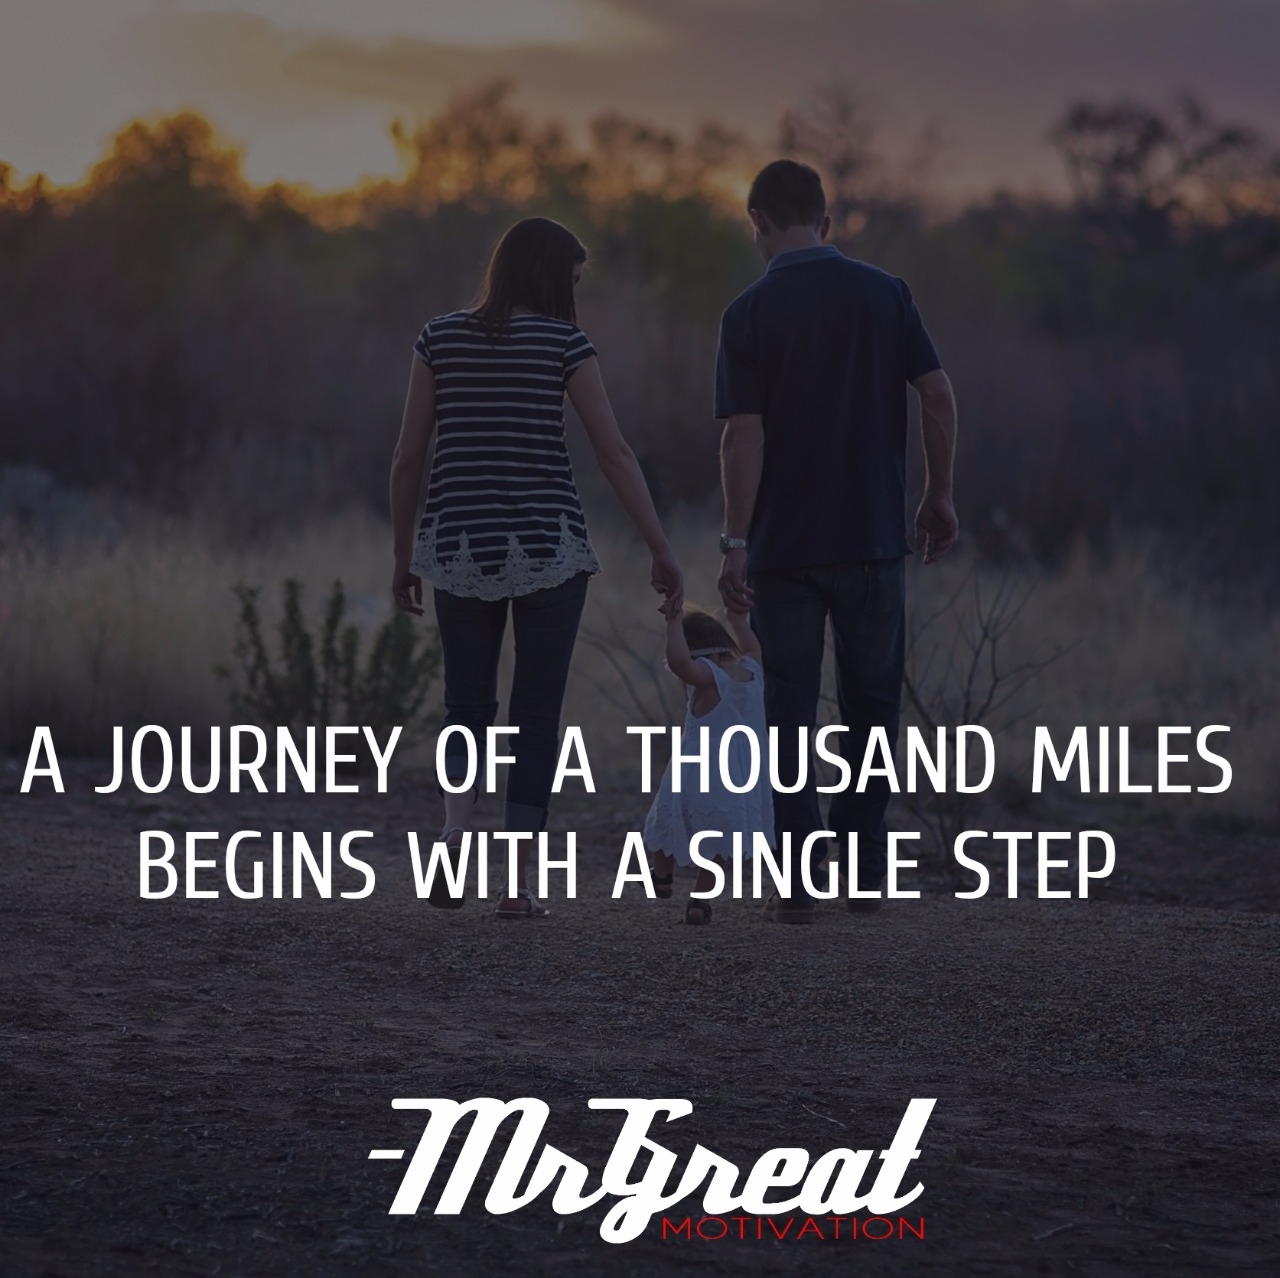 THE JOURNEY OF A THOUSAND MILES BEGINS WITH SINGLE STEP